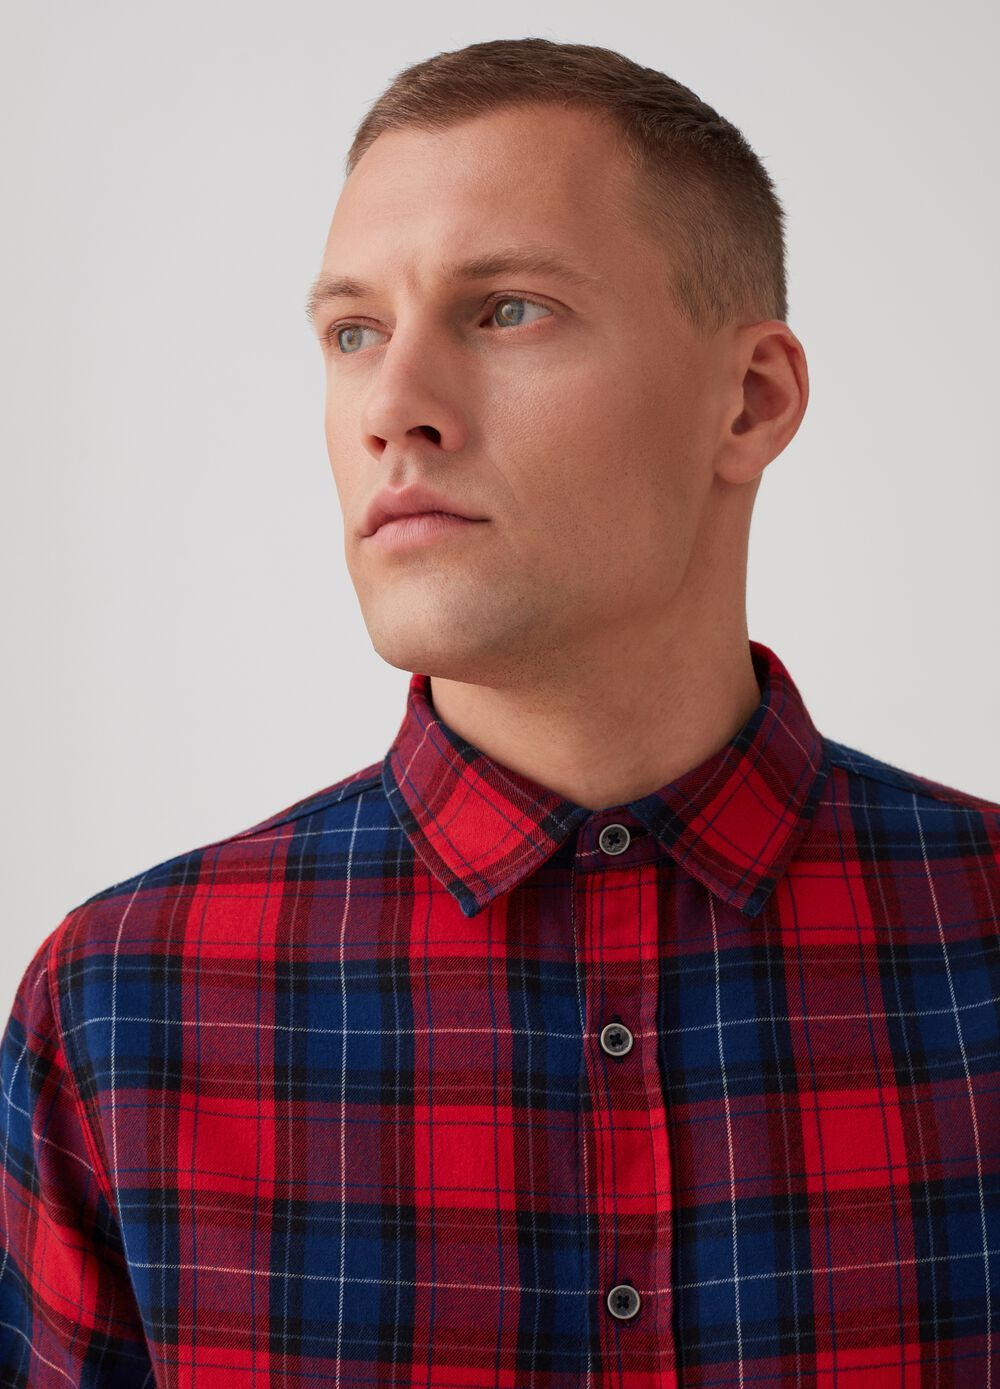 100% cotton shirt with buttons and check pattern